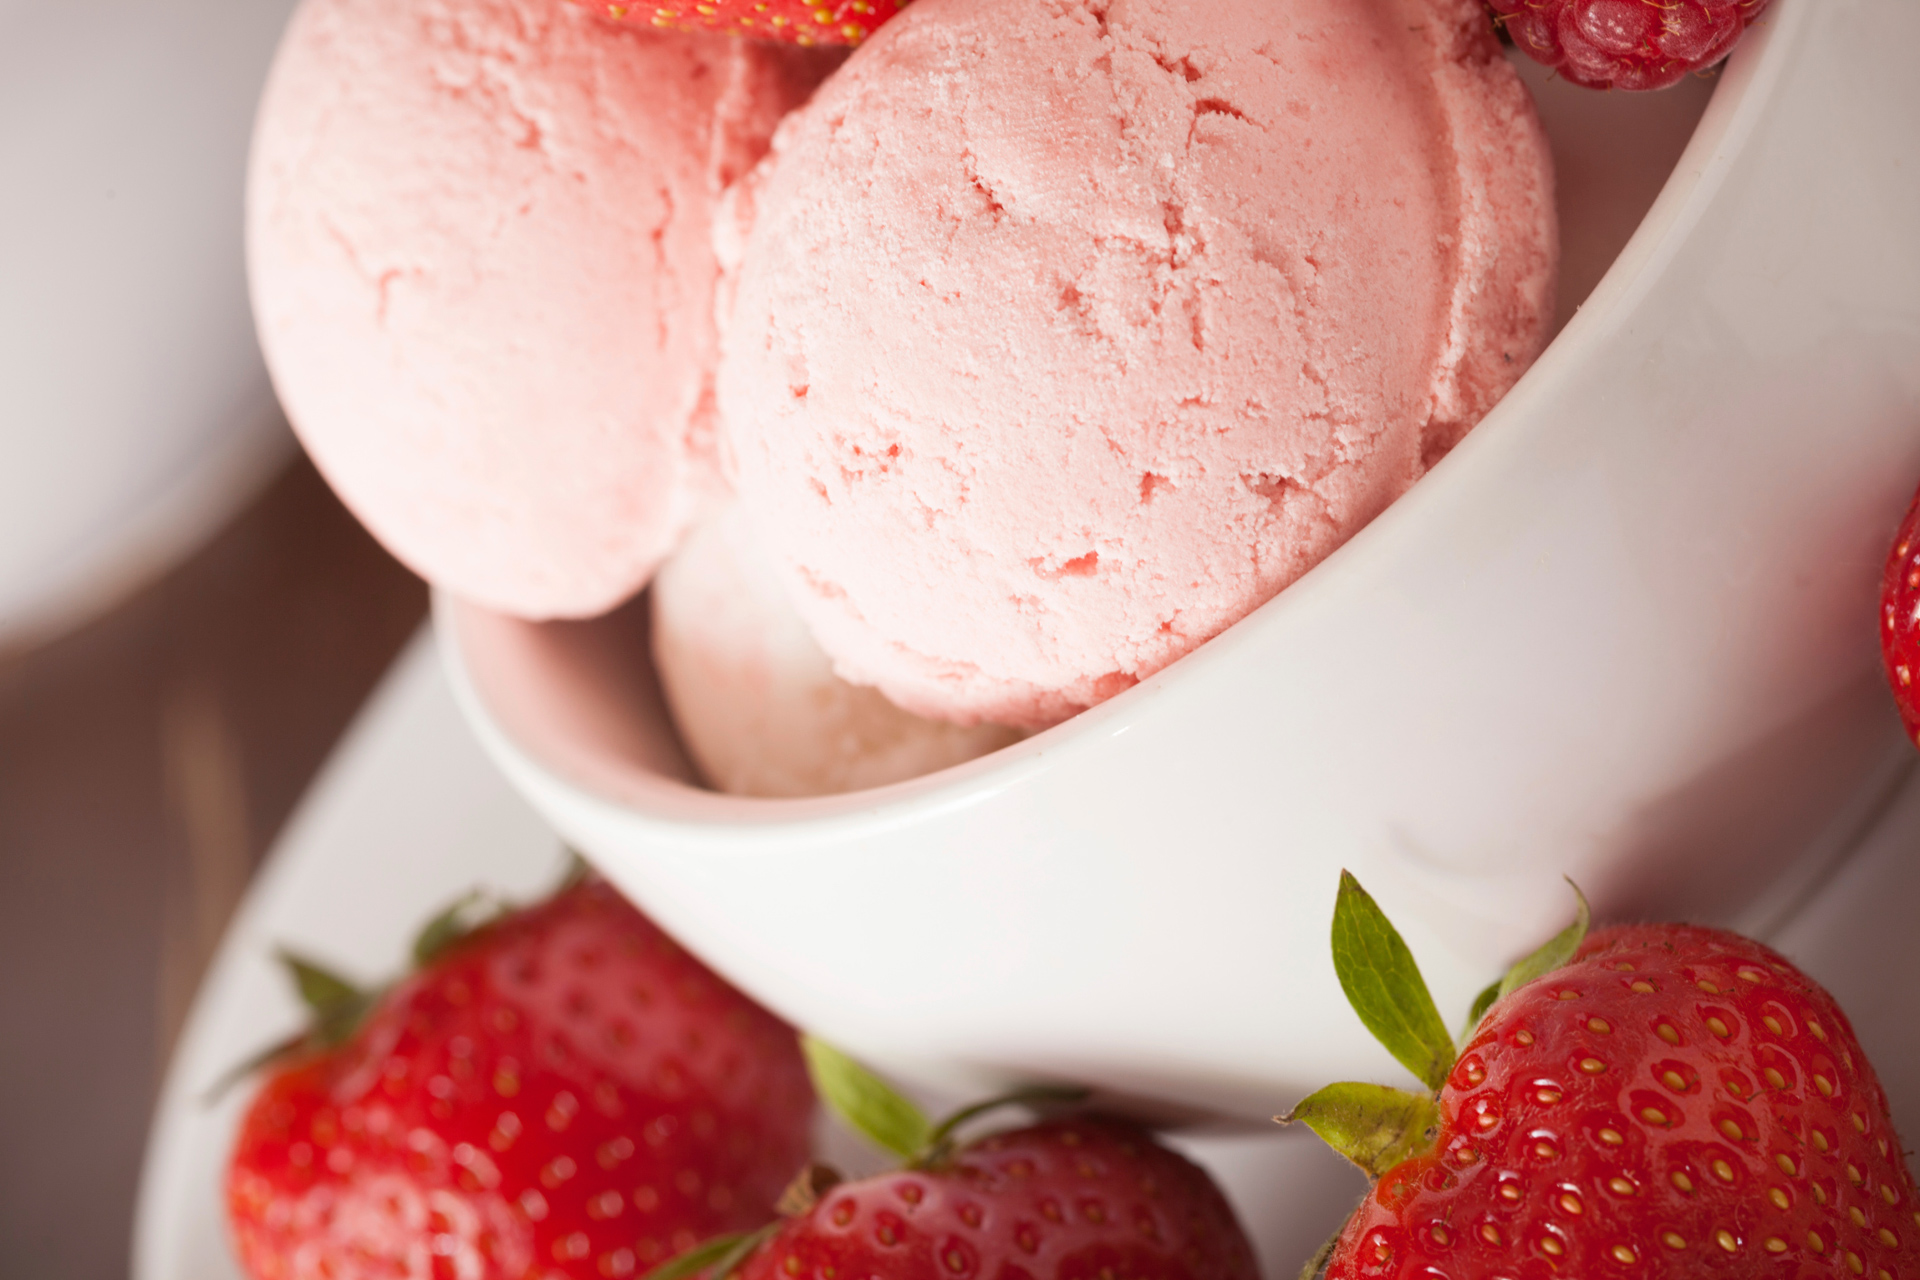 Vanilla or strawberry ice cream